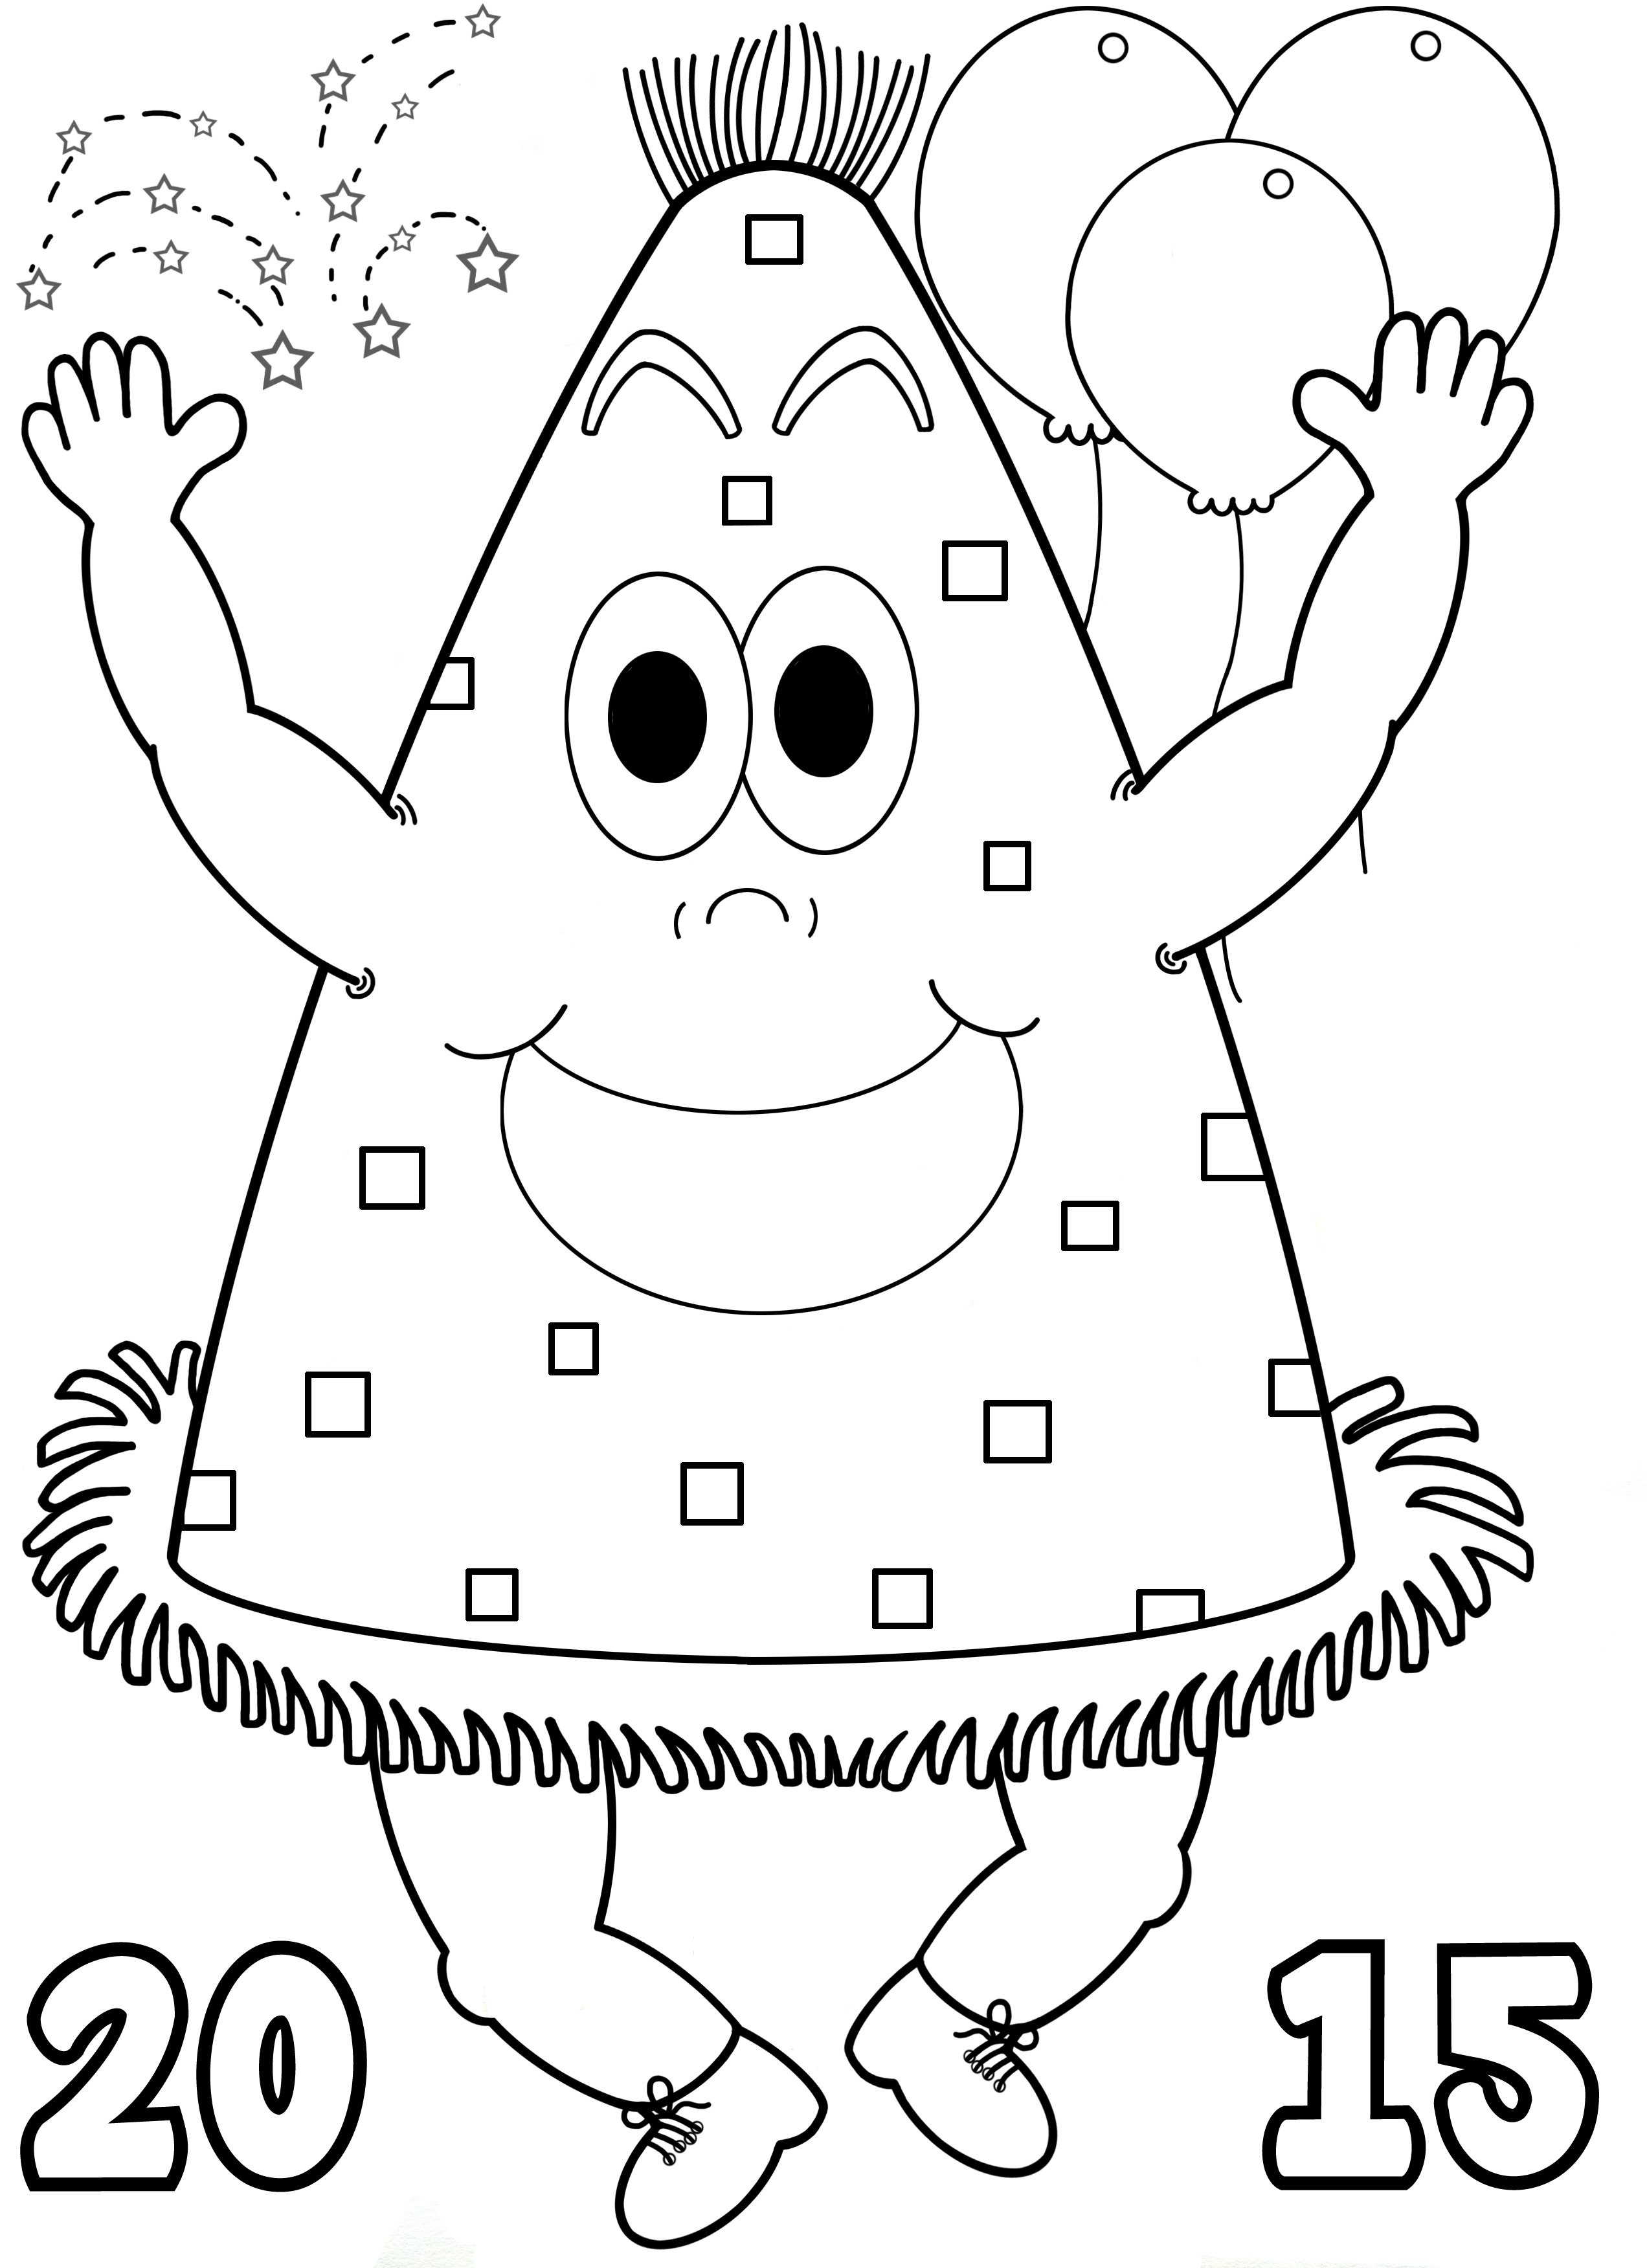 Happy New Year Enjoy This Free Printable Party Hat Coloring Page